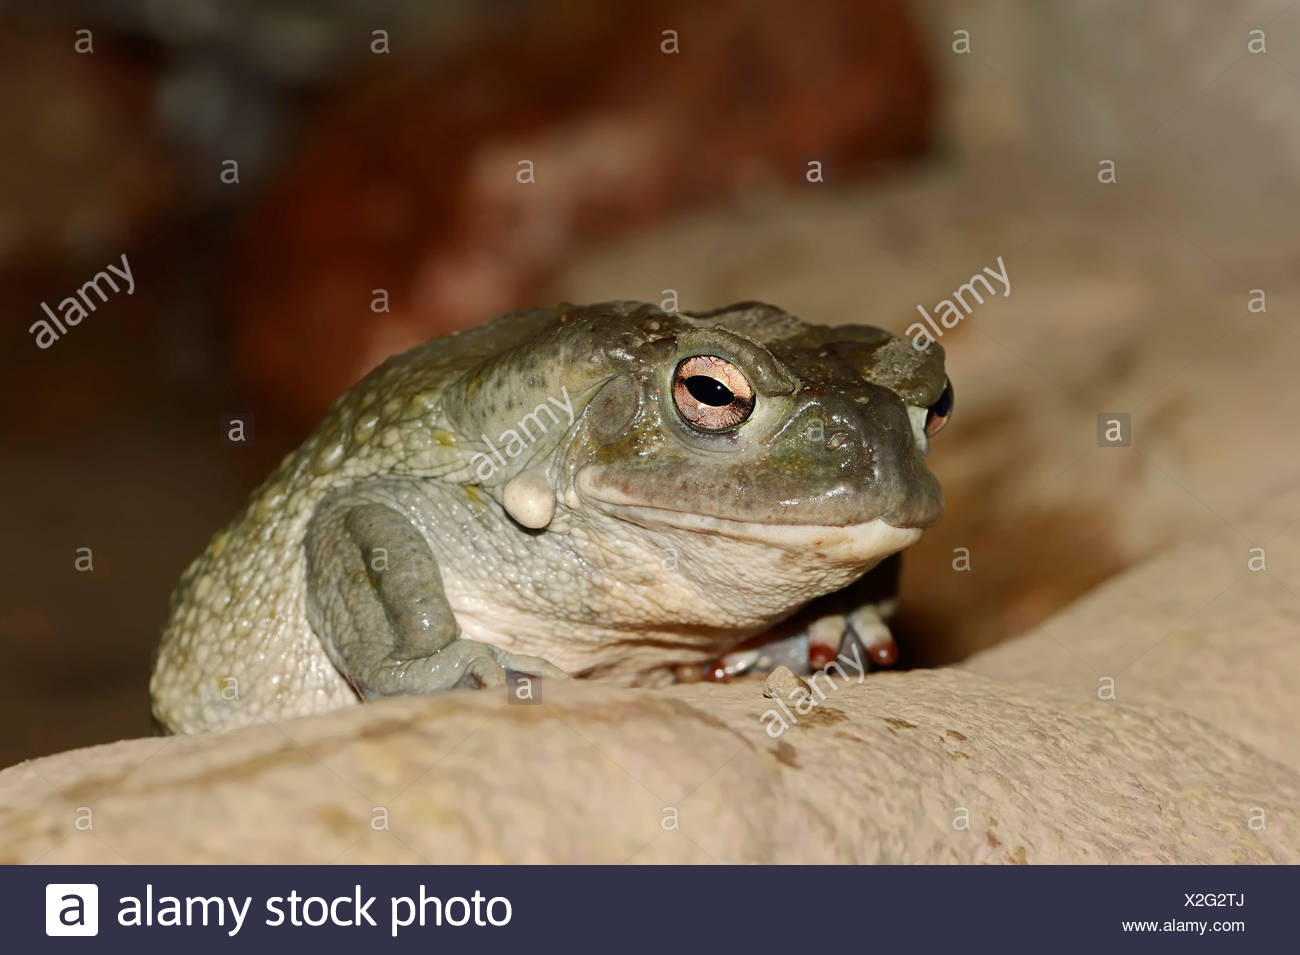 Sonoran Desert Toad (Bufo alvarius), native to the Southwestern United States and Mexico, captive - Stock Image